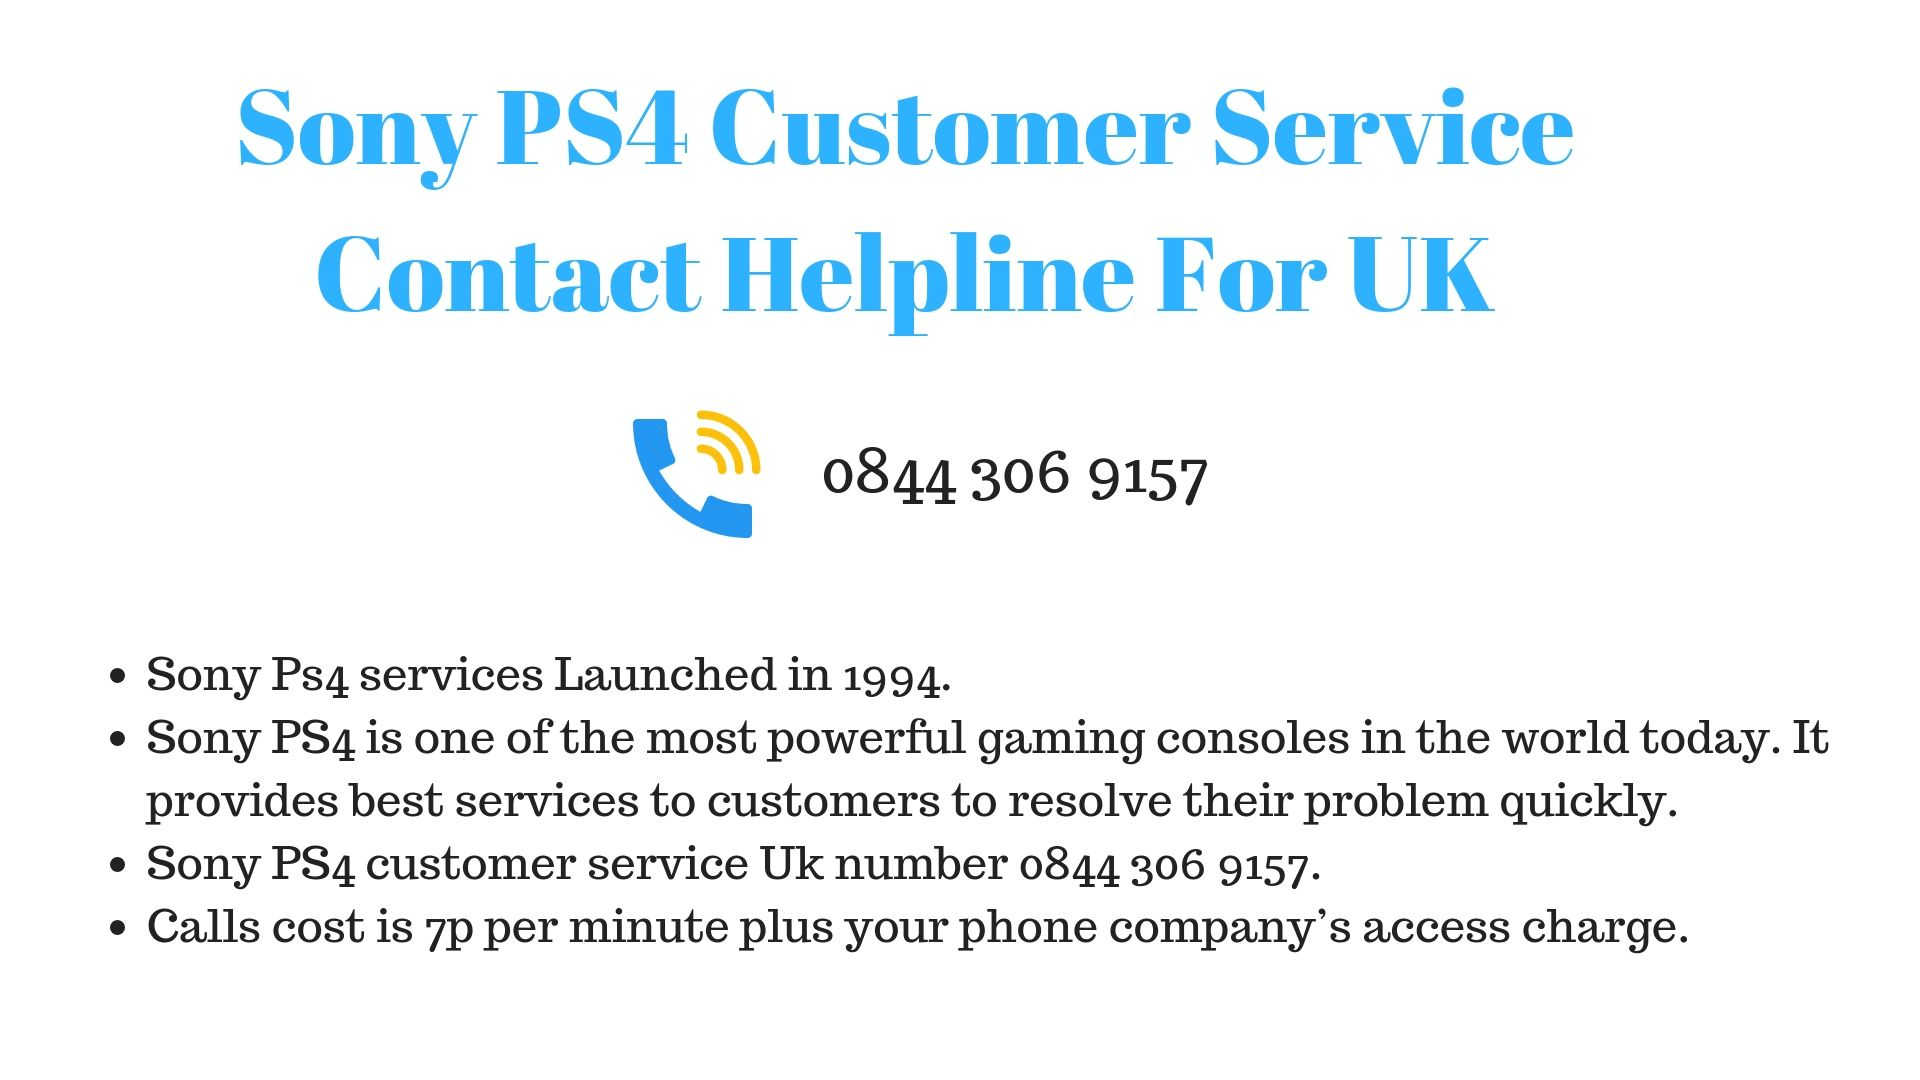 Welcome To 24 7helpline Co Uk Direct Call Connection Service 24